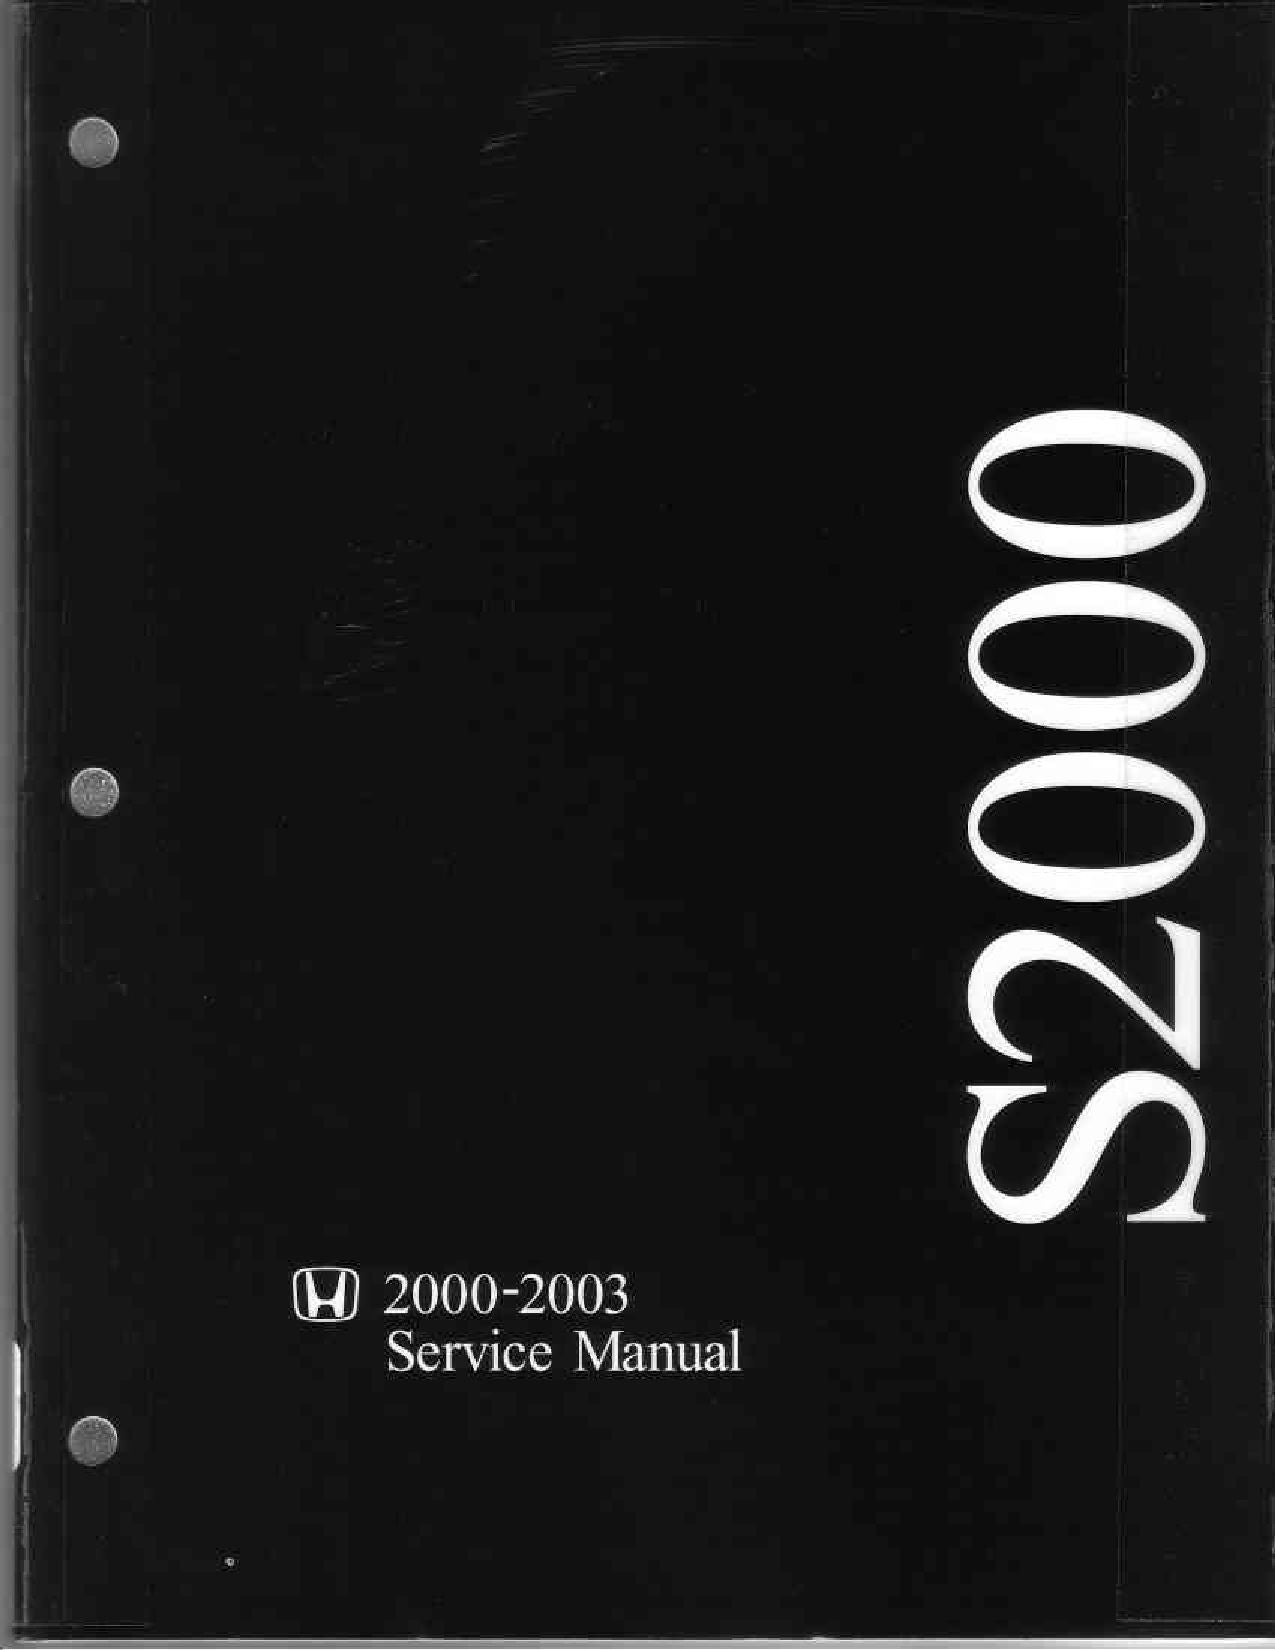 Honda S2000 00 03 Service Manual 01 By Rob Issuu Reed Switch Current Sensor Circuit Diagram Sensorcircuit